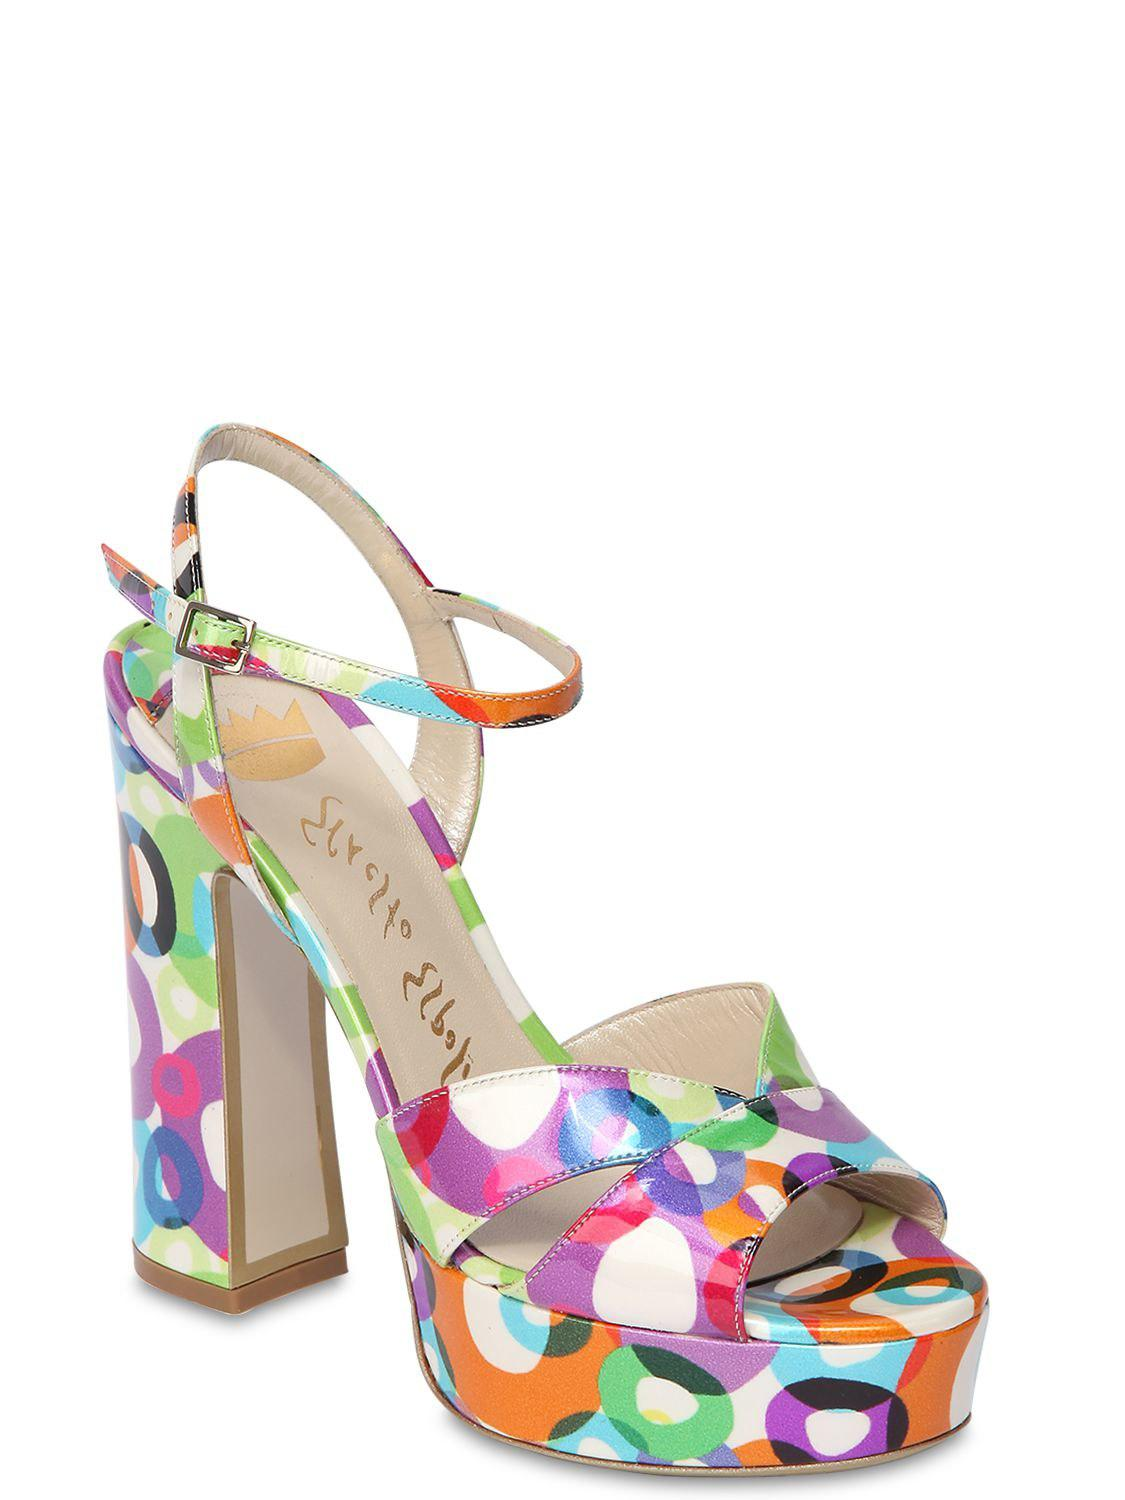 Ernesto Esposito 125MM PRINTED PATENT LEATHER SANDALS e9ZDii6o